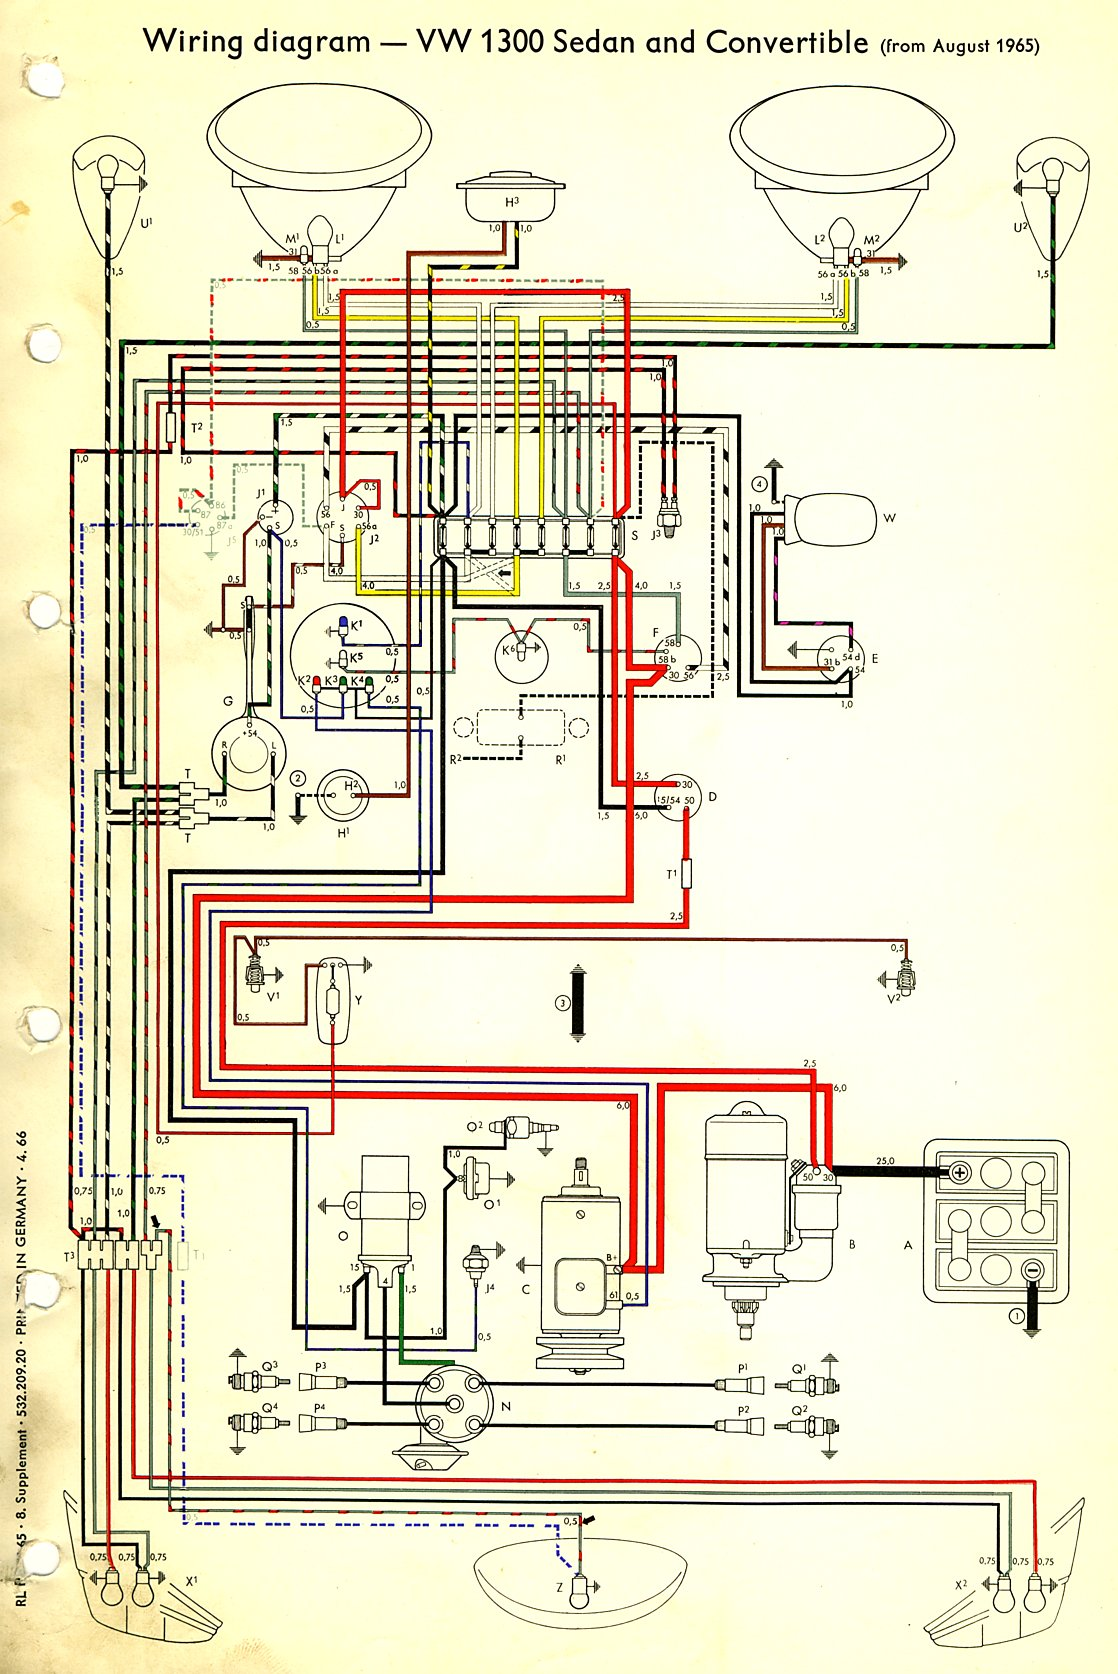 bug_66 1966 beetle wiring diagram thegoldenbug com 1973 vw beetle wiring diagram at n-0.co